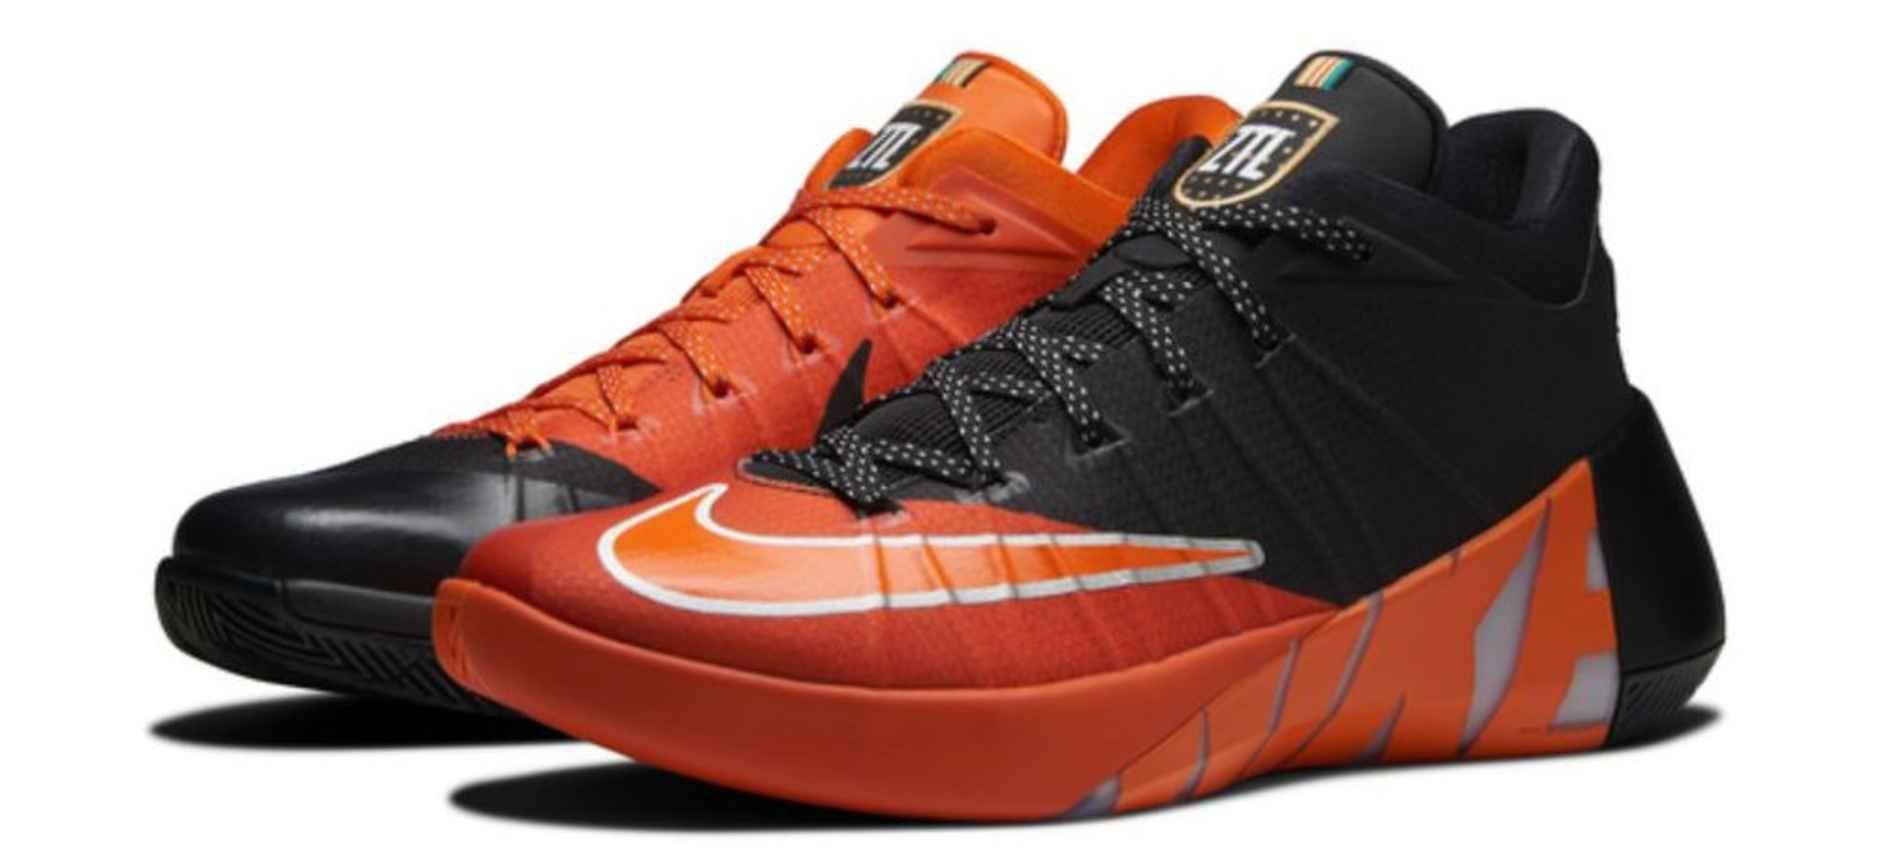 official photos 650dd 2a0ee ZACH LAVINE WON AN EPIC 2016 NBA DUNK CONTEST IN THESE NIKE HYPERDUNK 2015  LOW PE